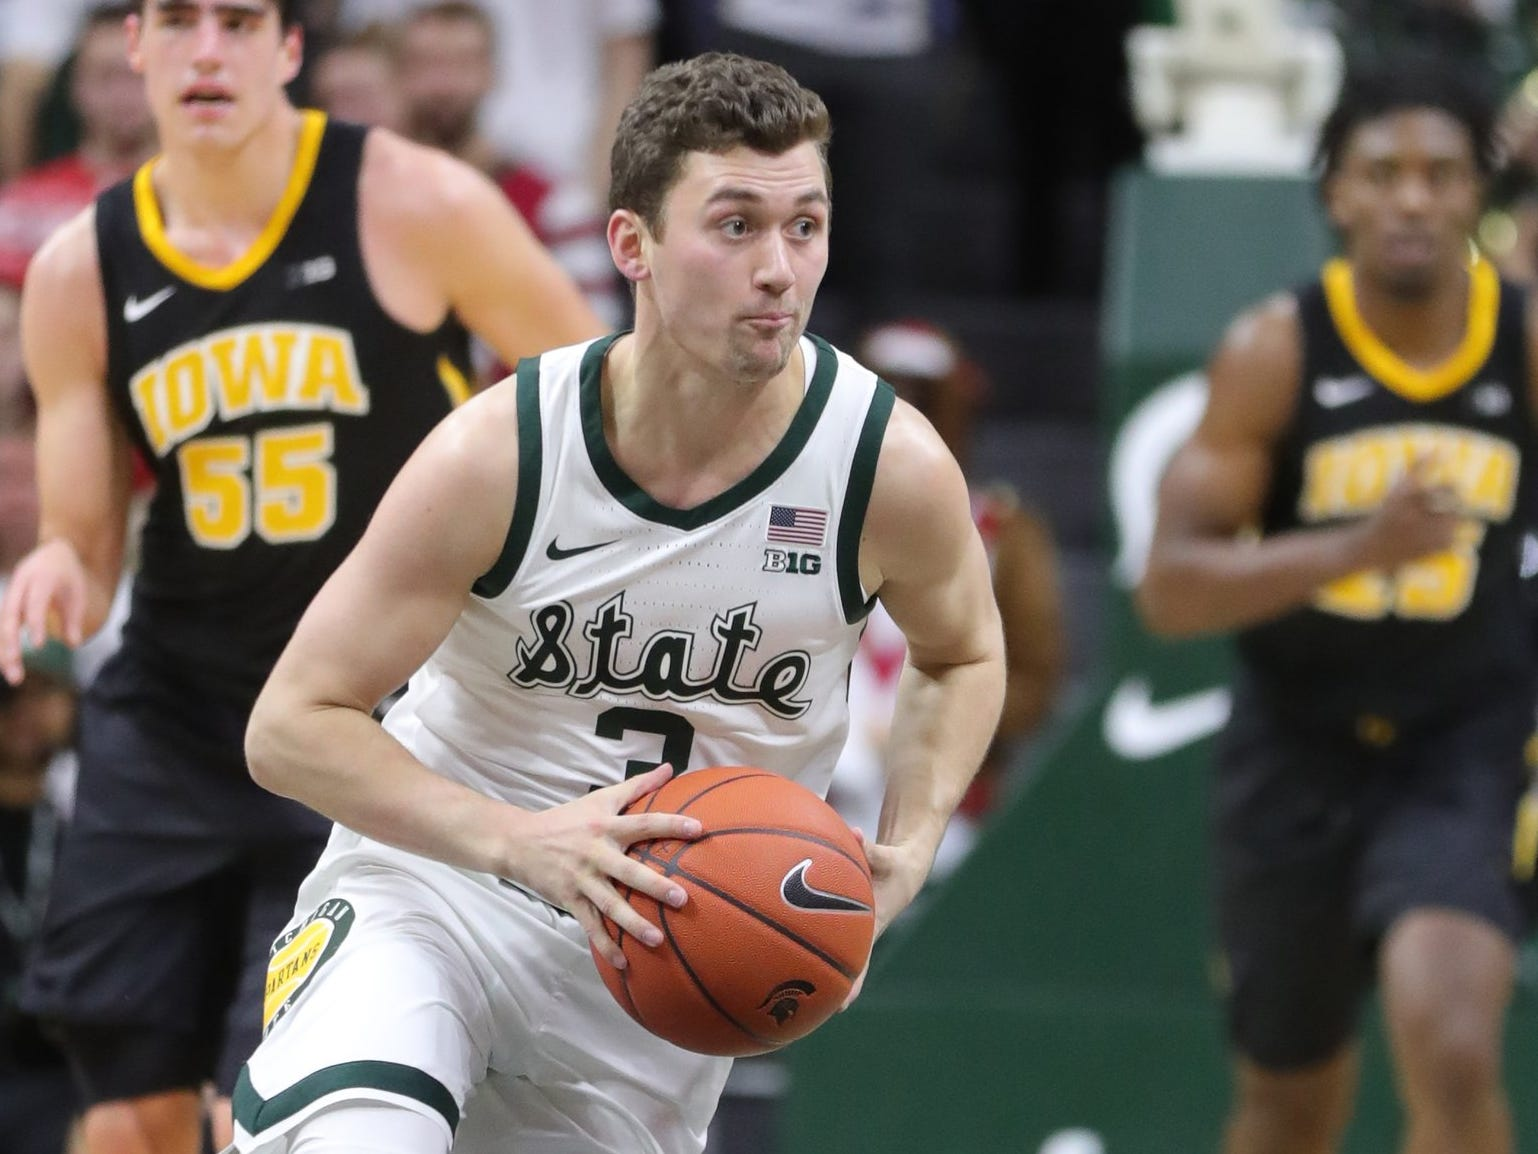 Michigan State guard Foster Loyer passes against Iowa  during second half action Monday, December 3, 2018 at the Breslin Center in East Lansing, Mich.